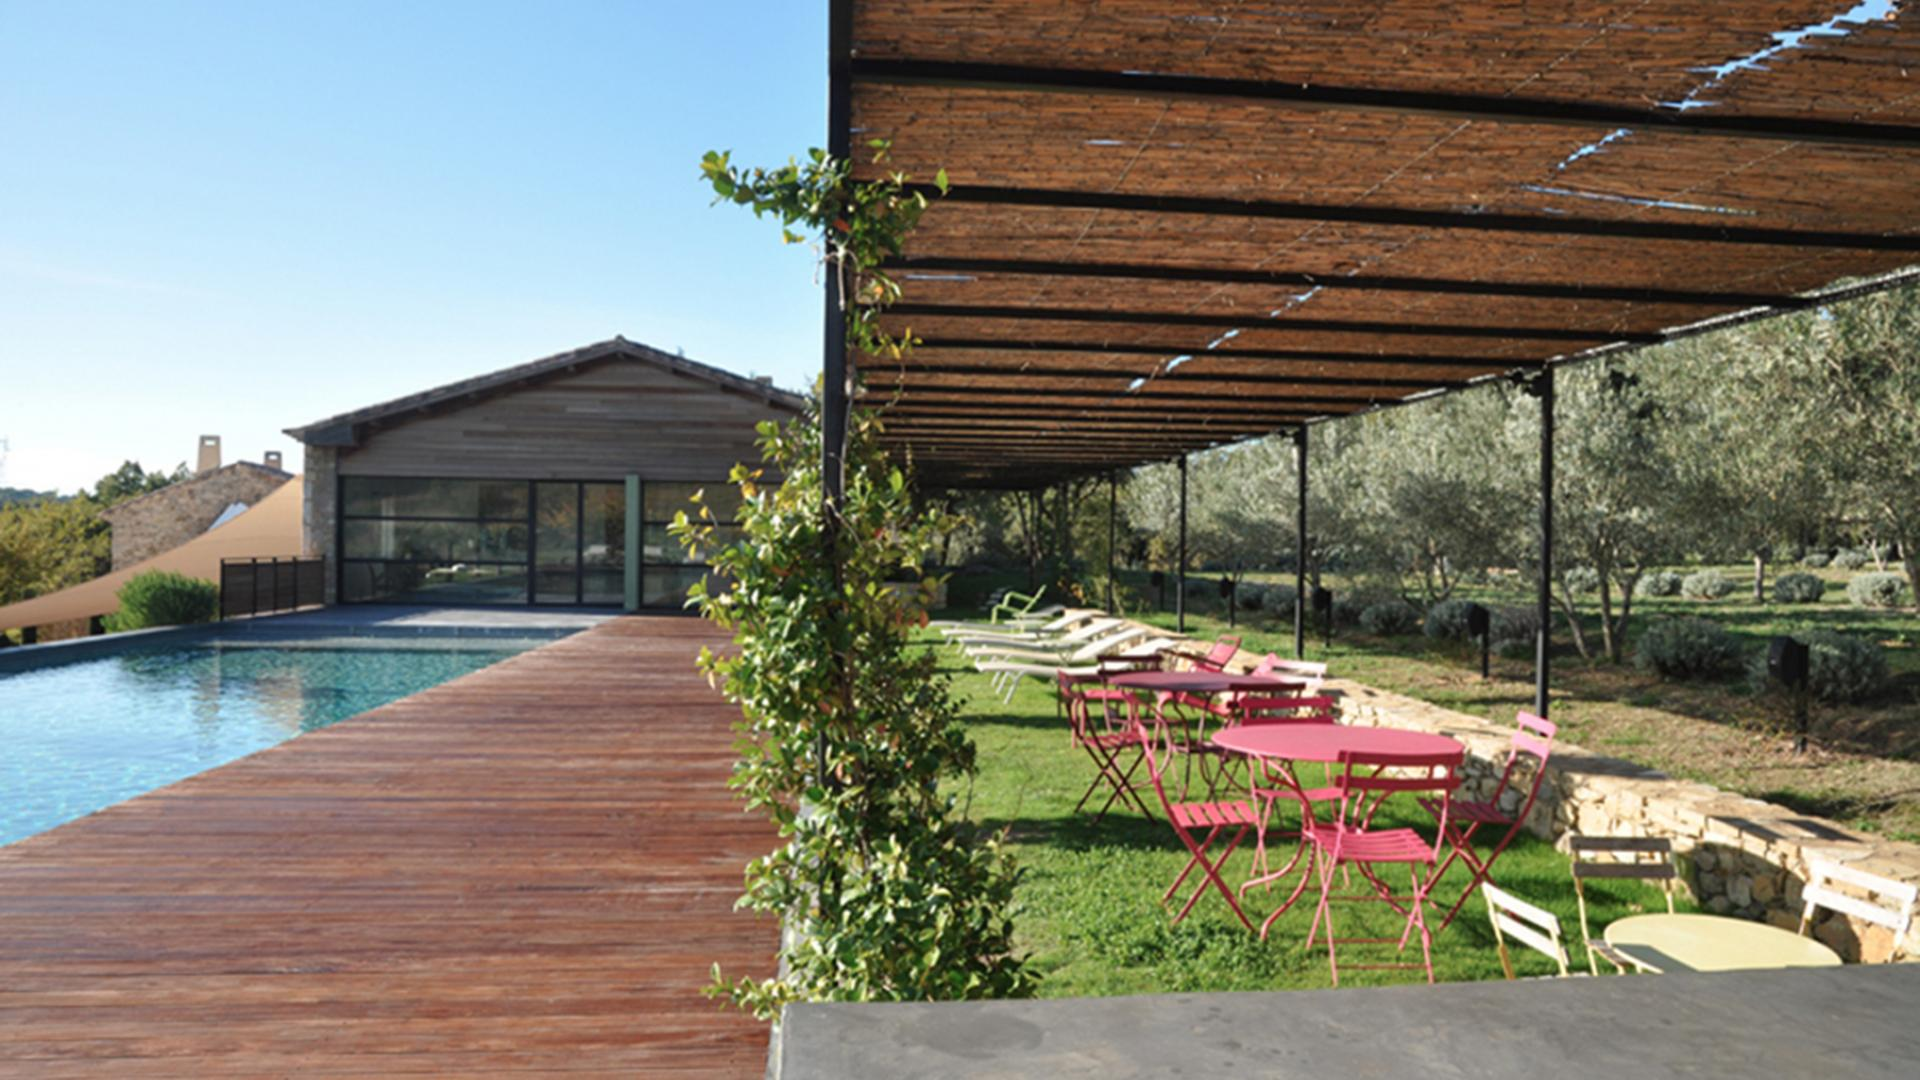 Location villa luxe Gard - Le Mas de So - Like&Book